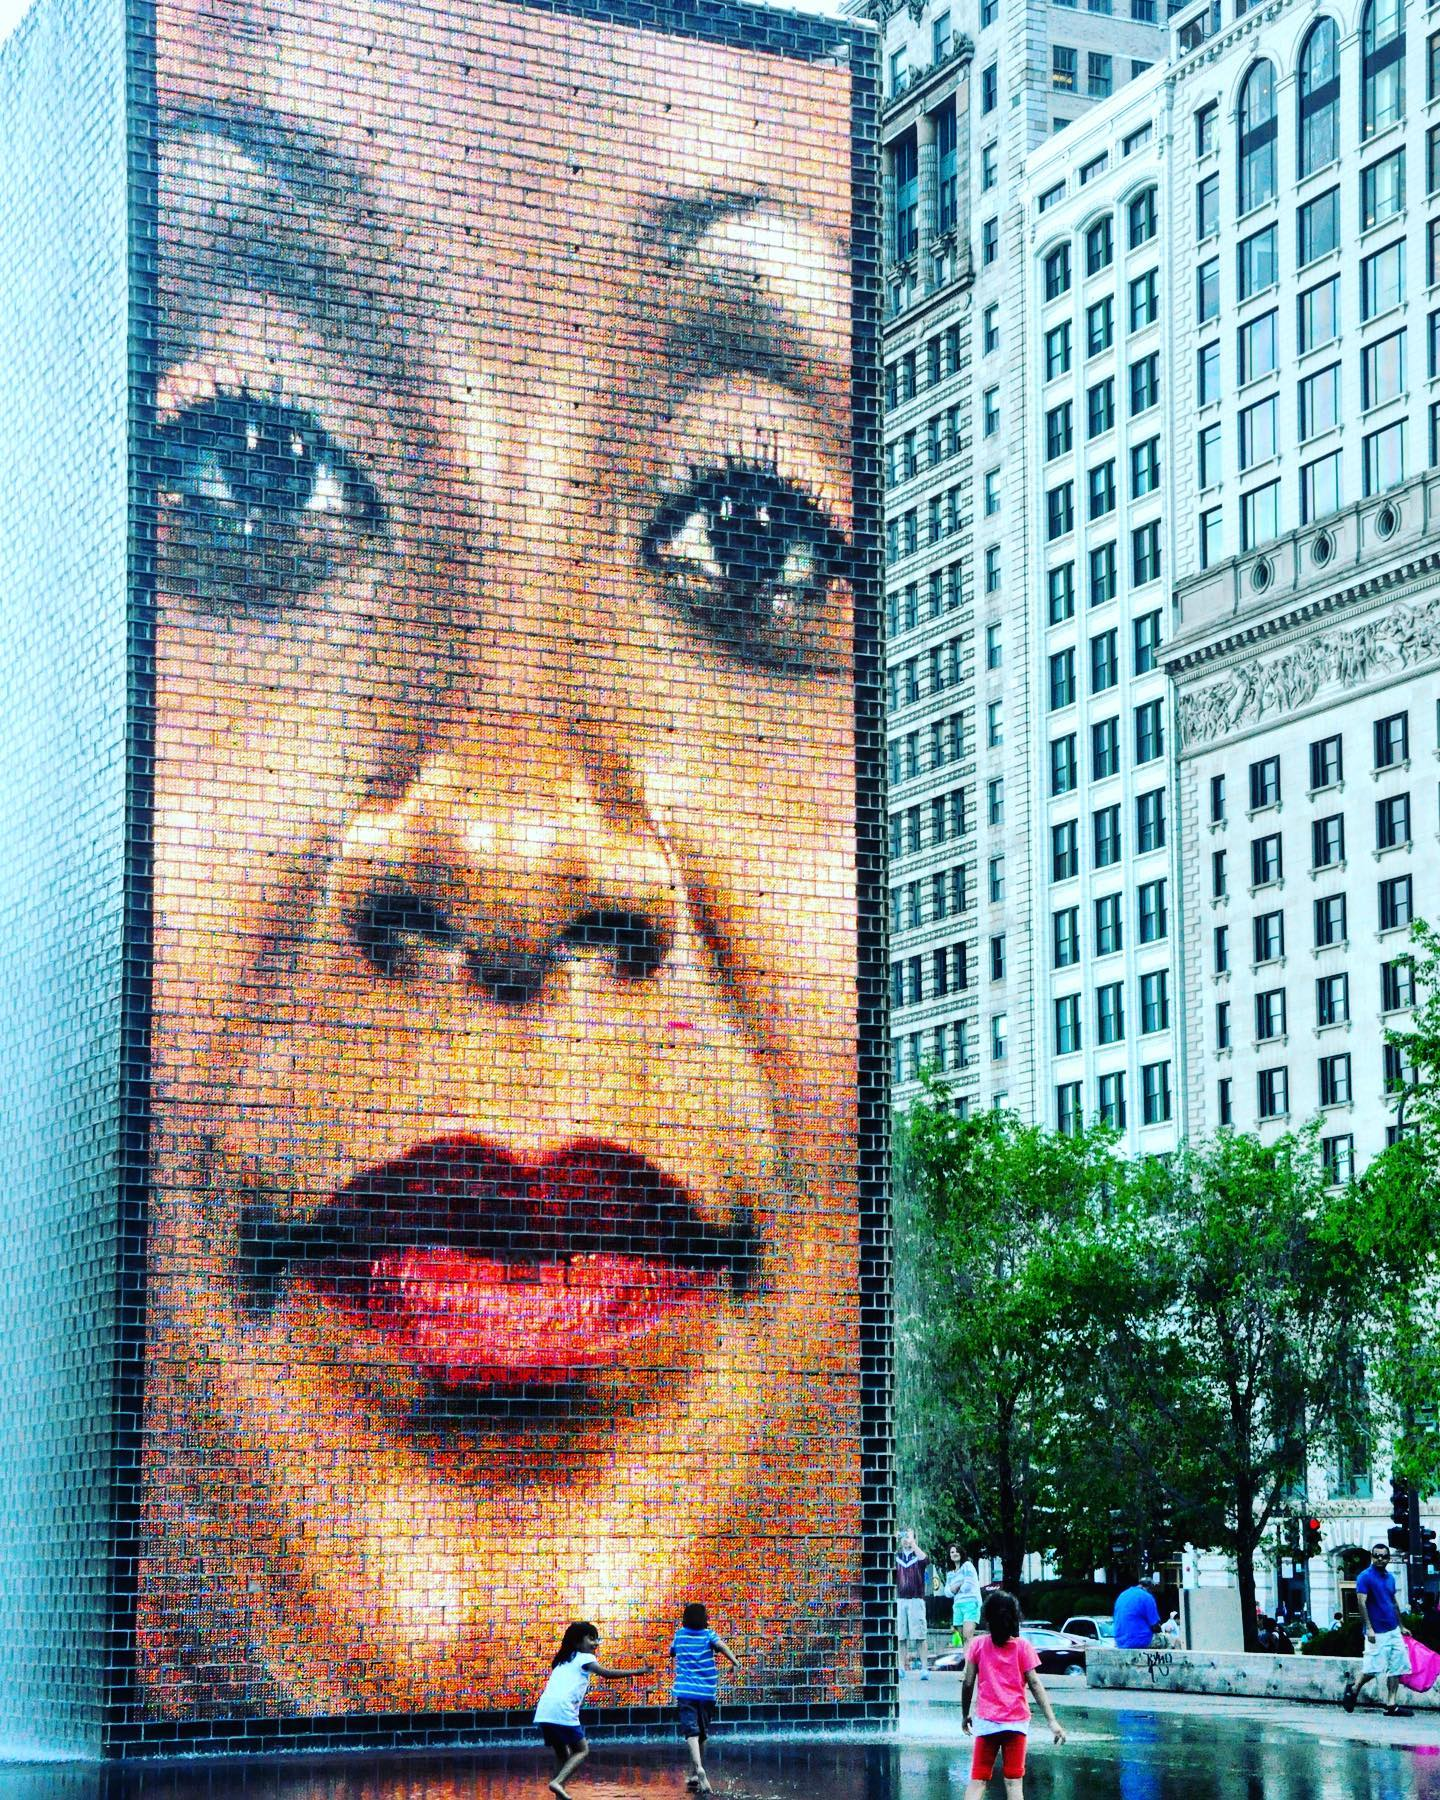 Crown Fountain, Chicago, Illinois One of several fountains in Chicago's Millennium Park. The Crown Fountain, designed by Spanish artist Jaume Plensa, is a pair of video screen boards with faces spouting water. The faces representing the different cultures of the city's people. #usa #usatravel #usatraveler #usa_and_go #travelphotography #travelgram #chicago #chicagogram #crownfountain #milleniumparkchicago #fountain #artwork #artwork #jaumeplensa #jaumeplensasculpture #sculpture #sculptureart #citytrip #cityphotography #reisefotografie #städtetrip #travelblog #travelblogger #reiseblog #reiseblogger #reiselust #reisefotografie #instatravel